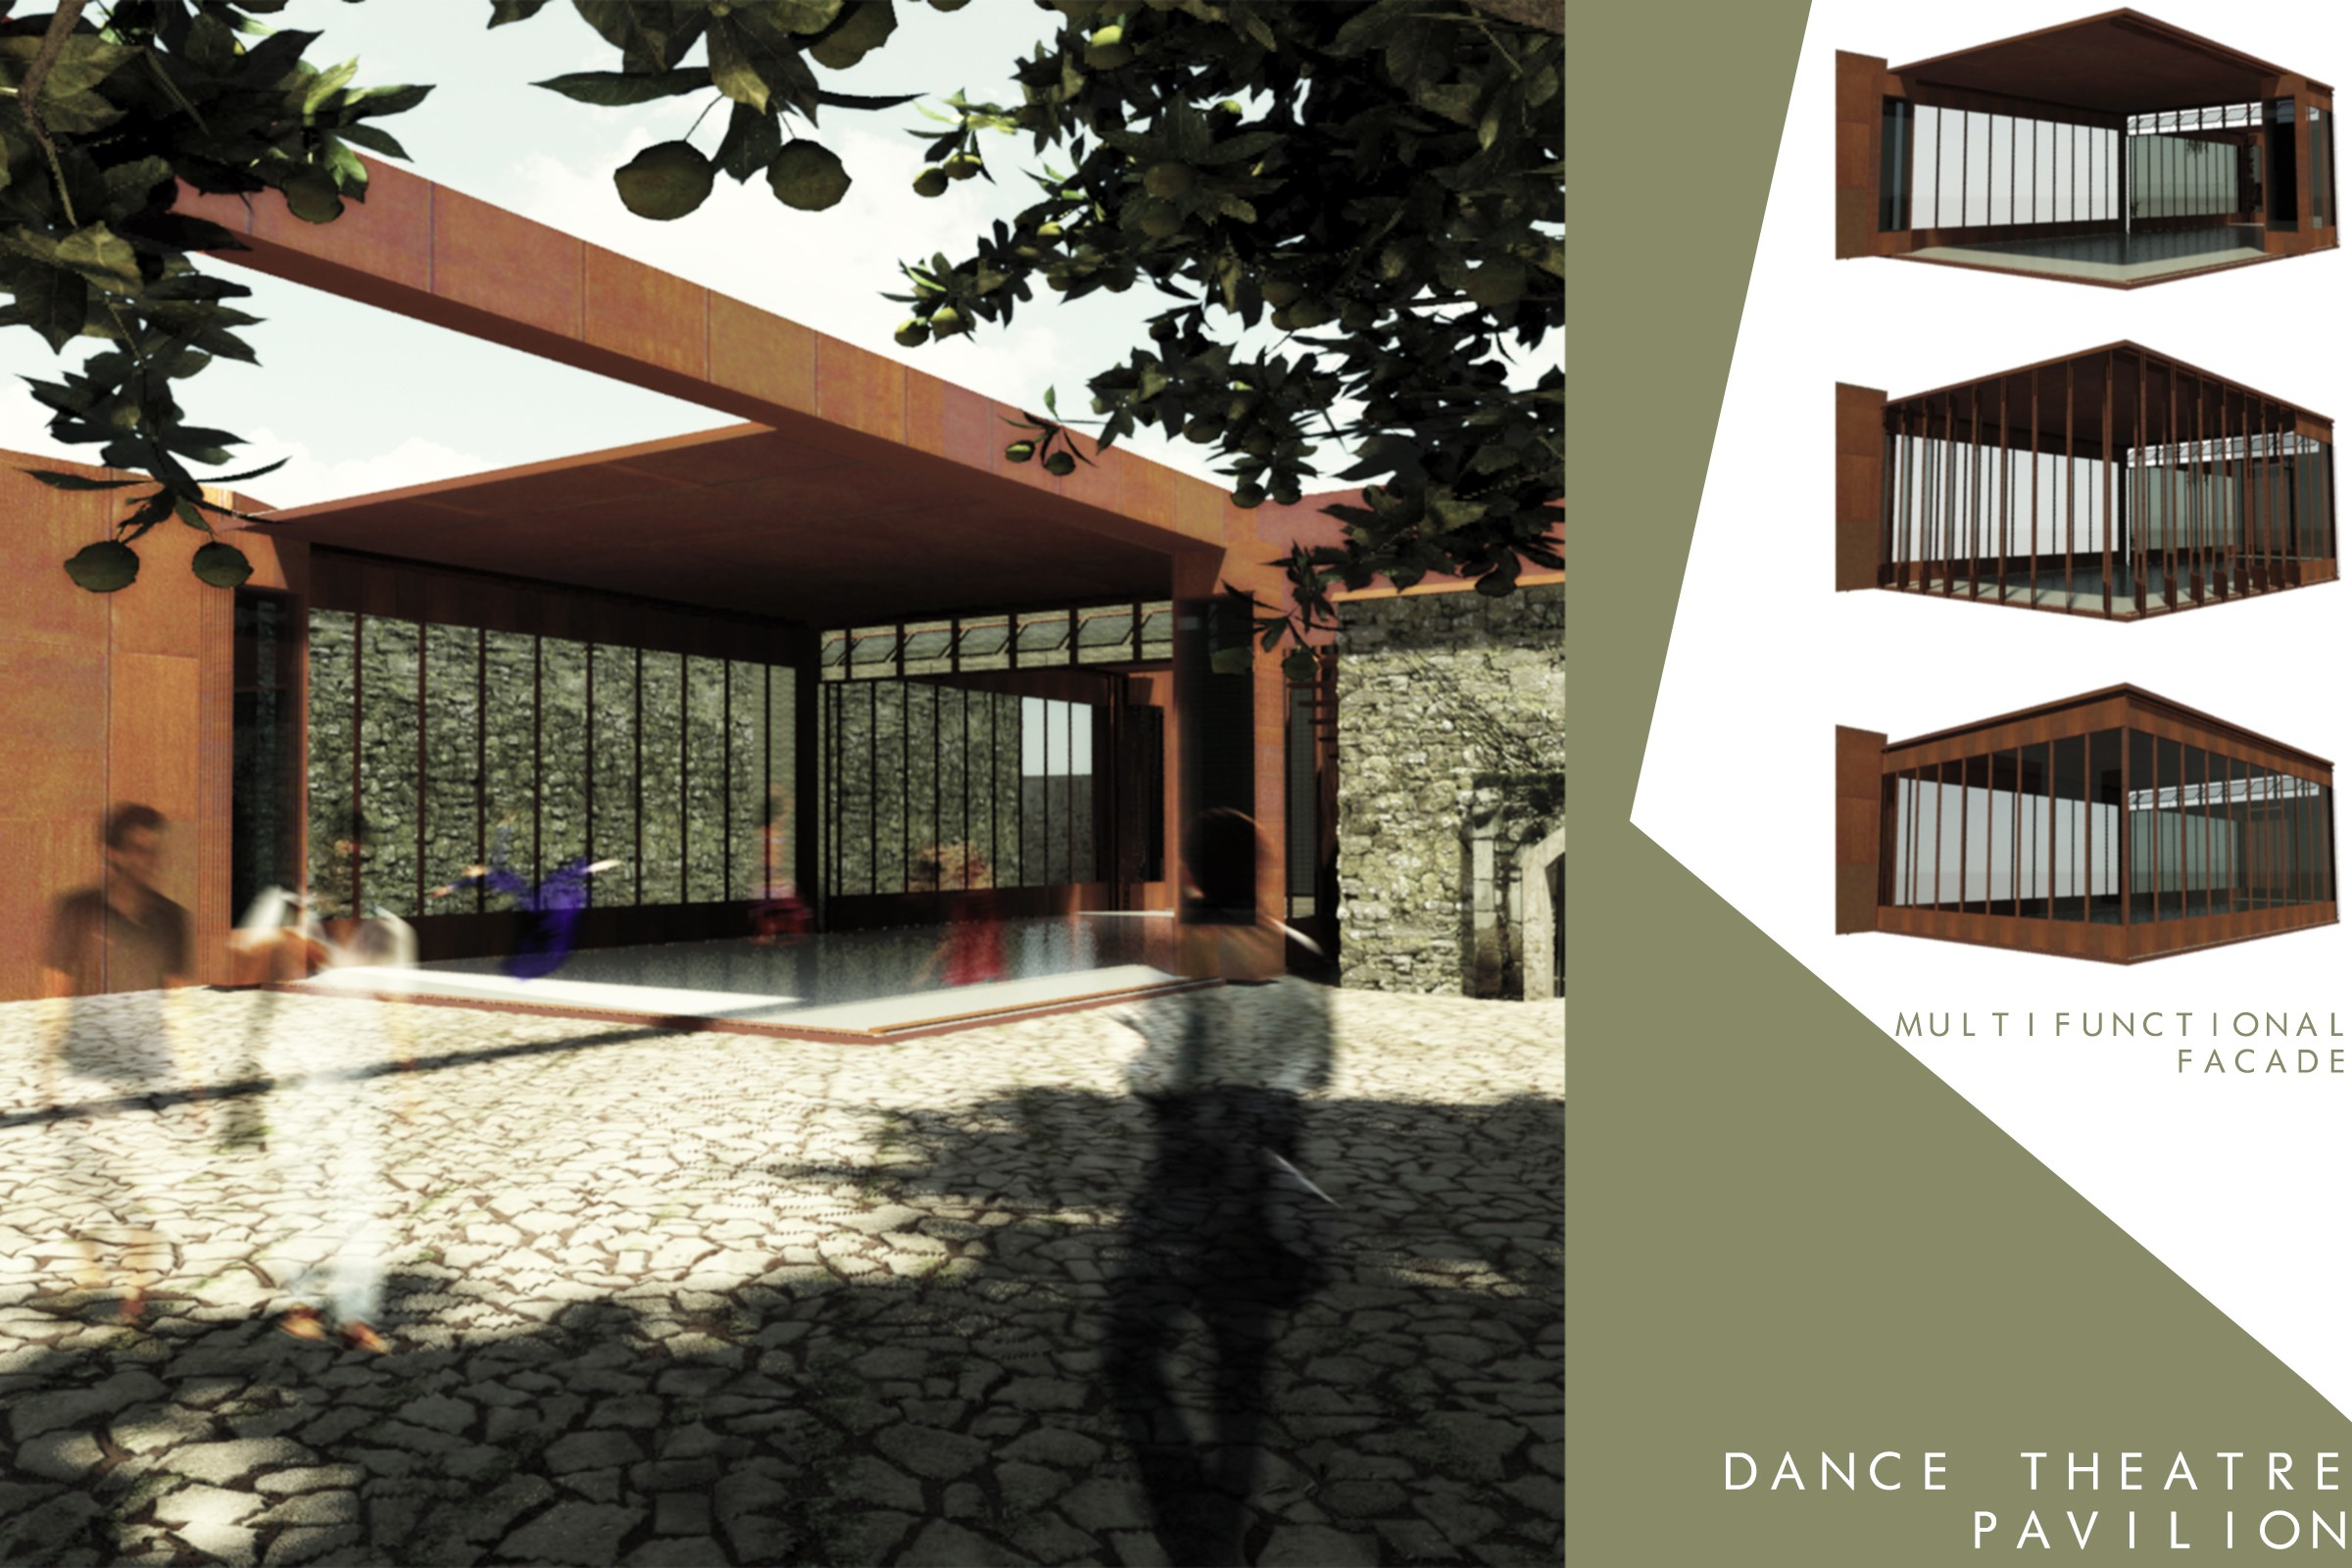 Exceptional Dance And Theatre Pavilion (enlargement In New Window)